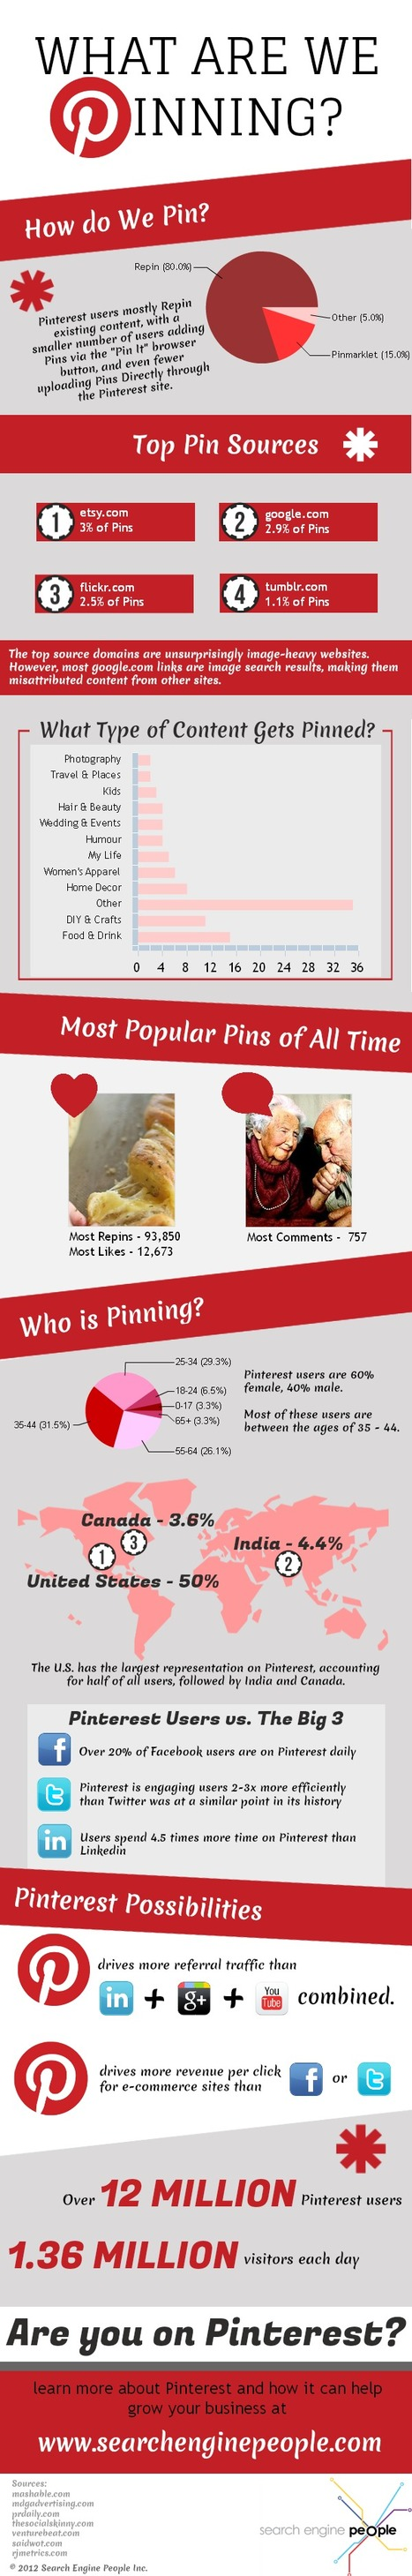 What Are We Pinning? [Infographic] | PINTEREST Watch - Curated by Jan Gordon | Scoop.it